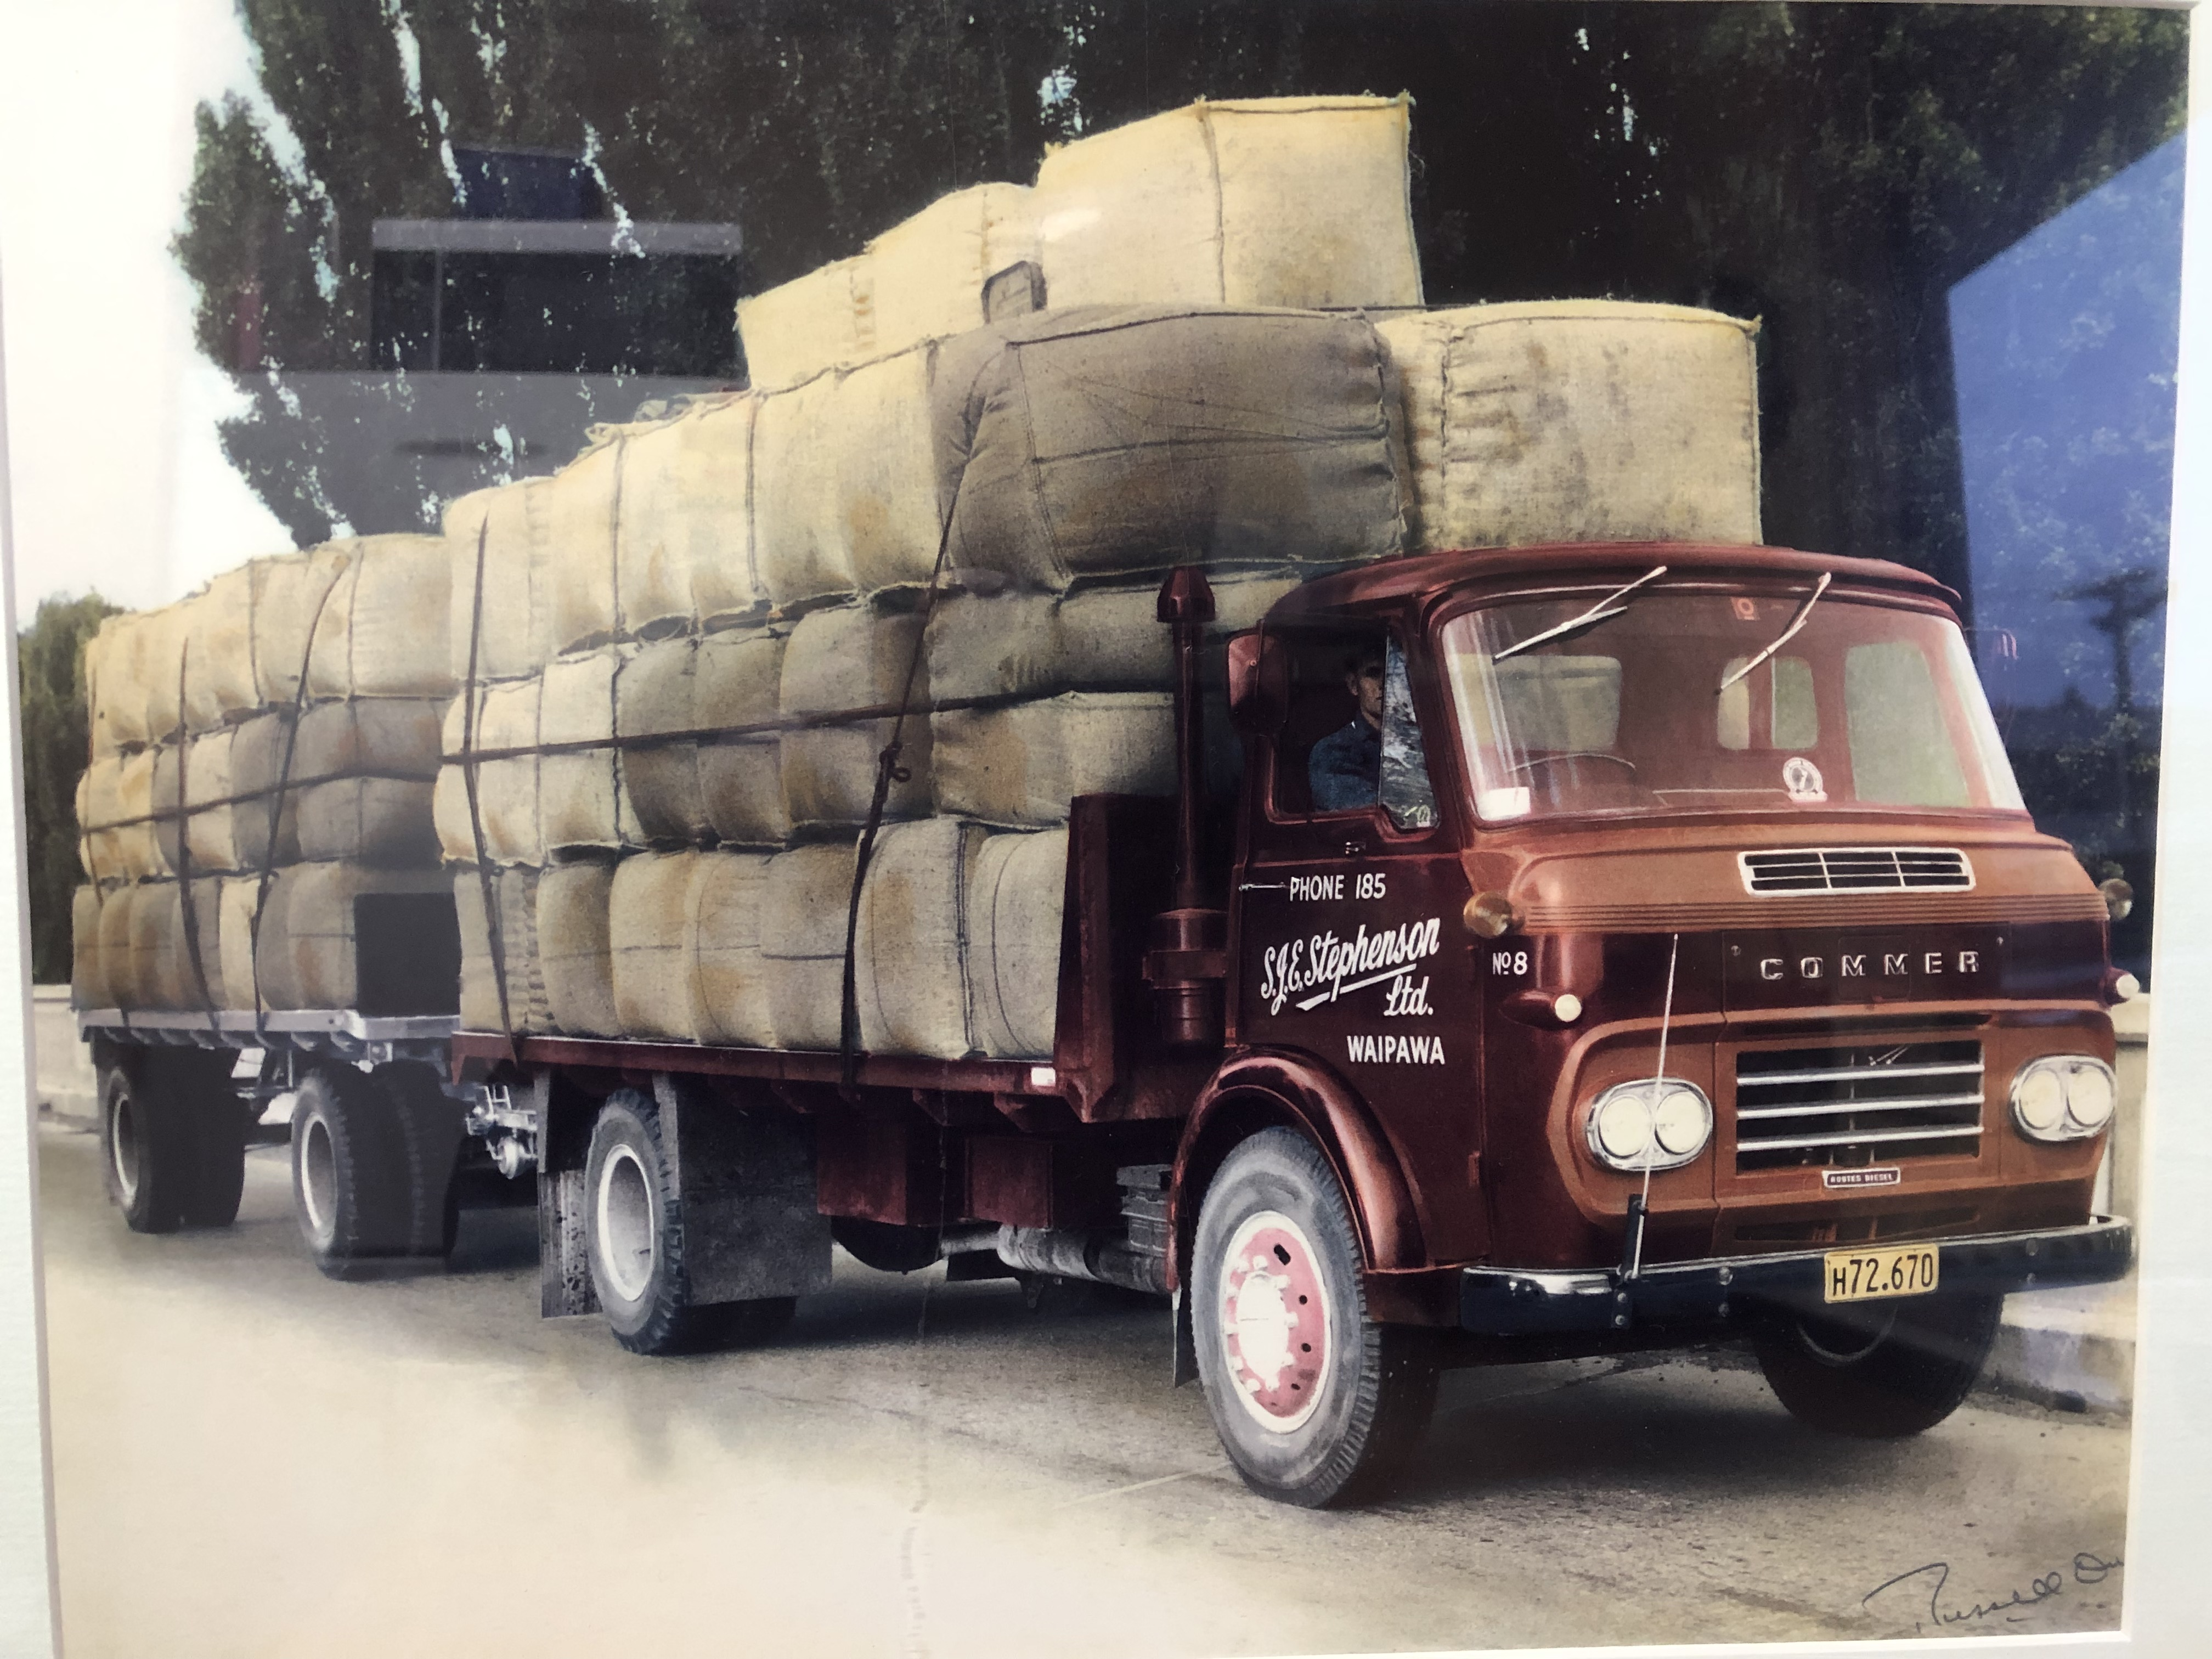 Colour photo of a SJE Transport truck